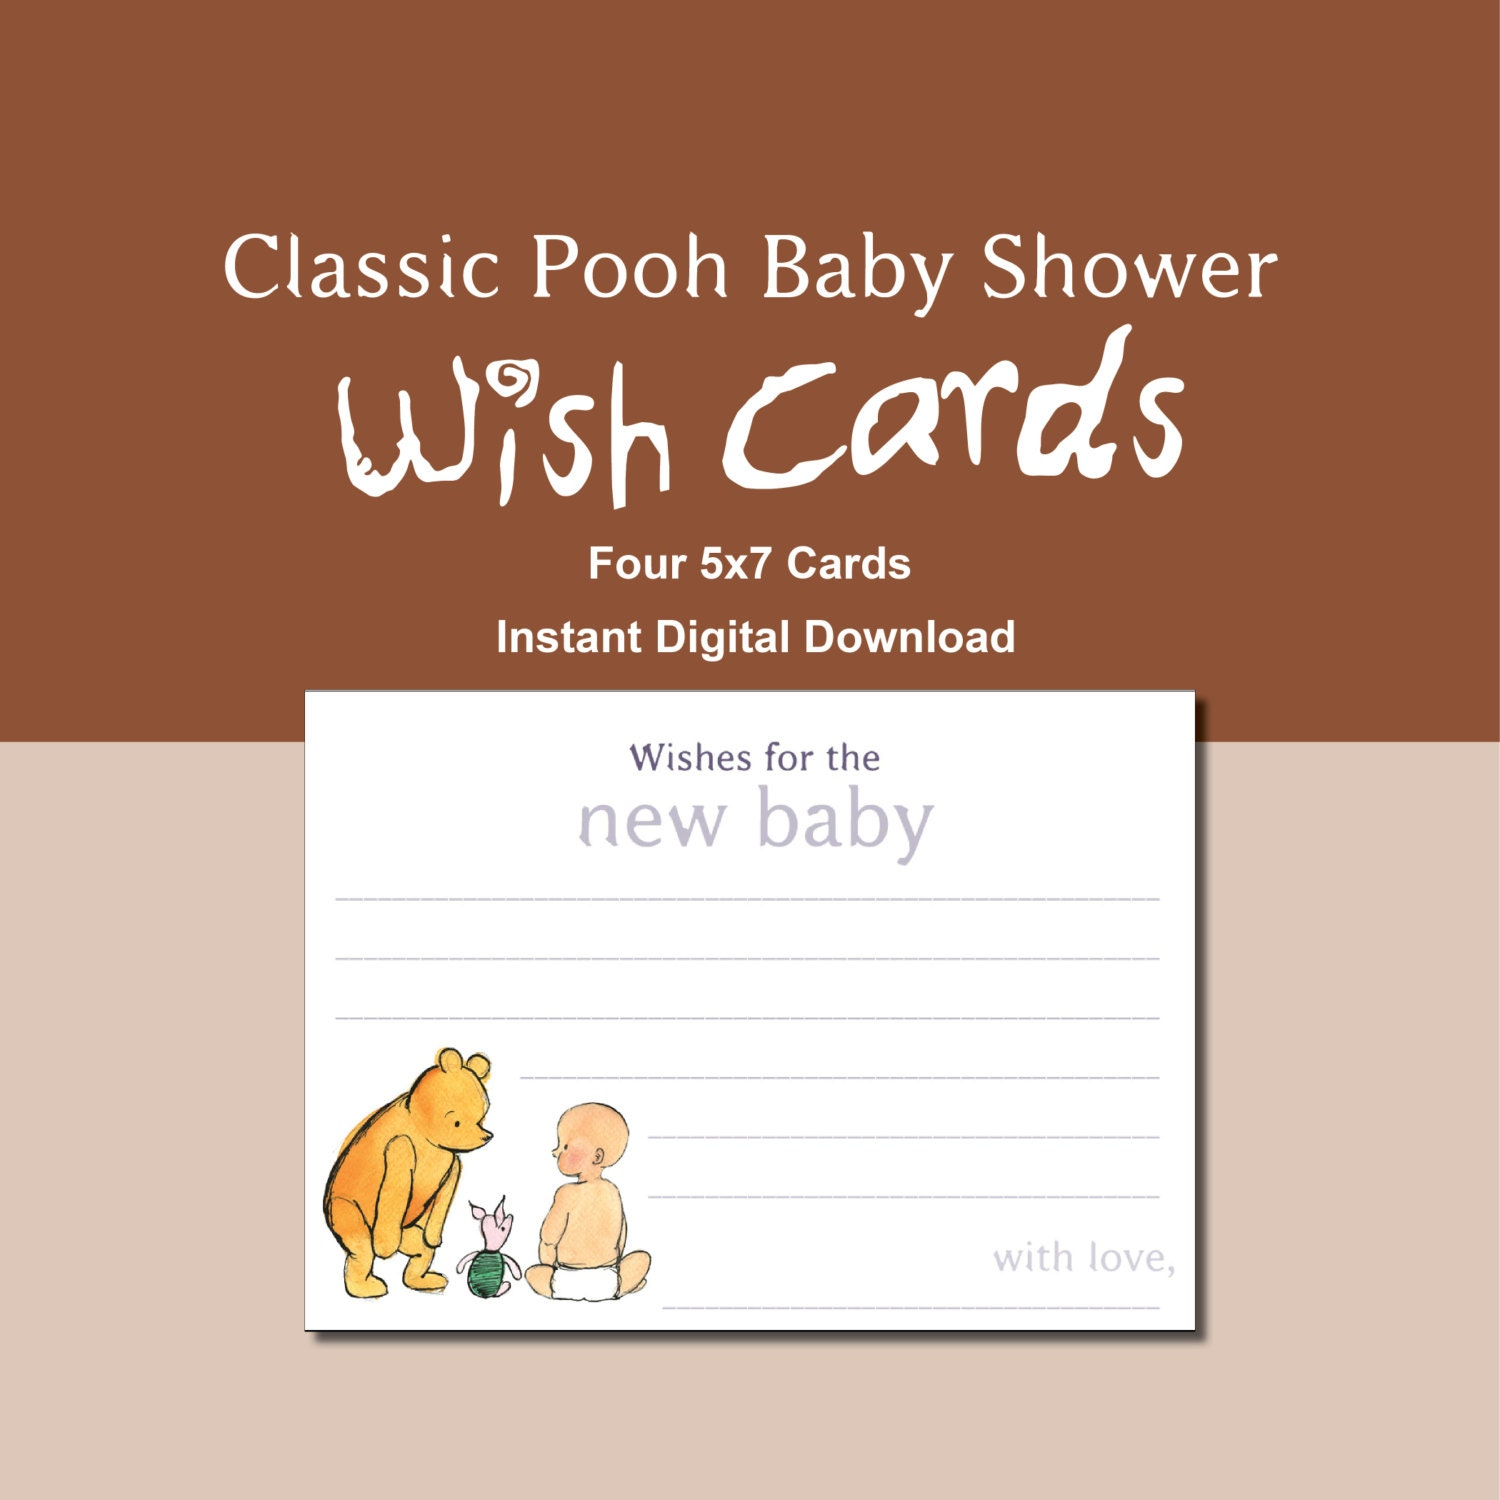 classic pooh baby shower wish cards